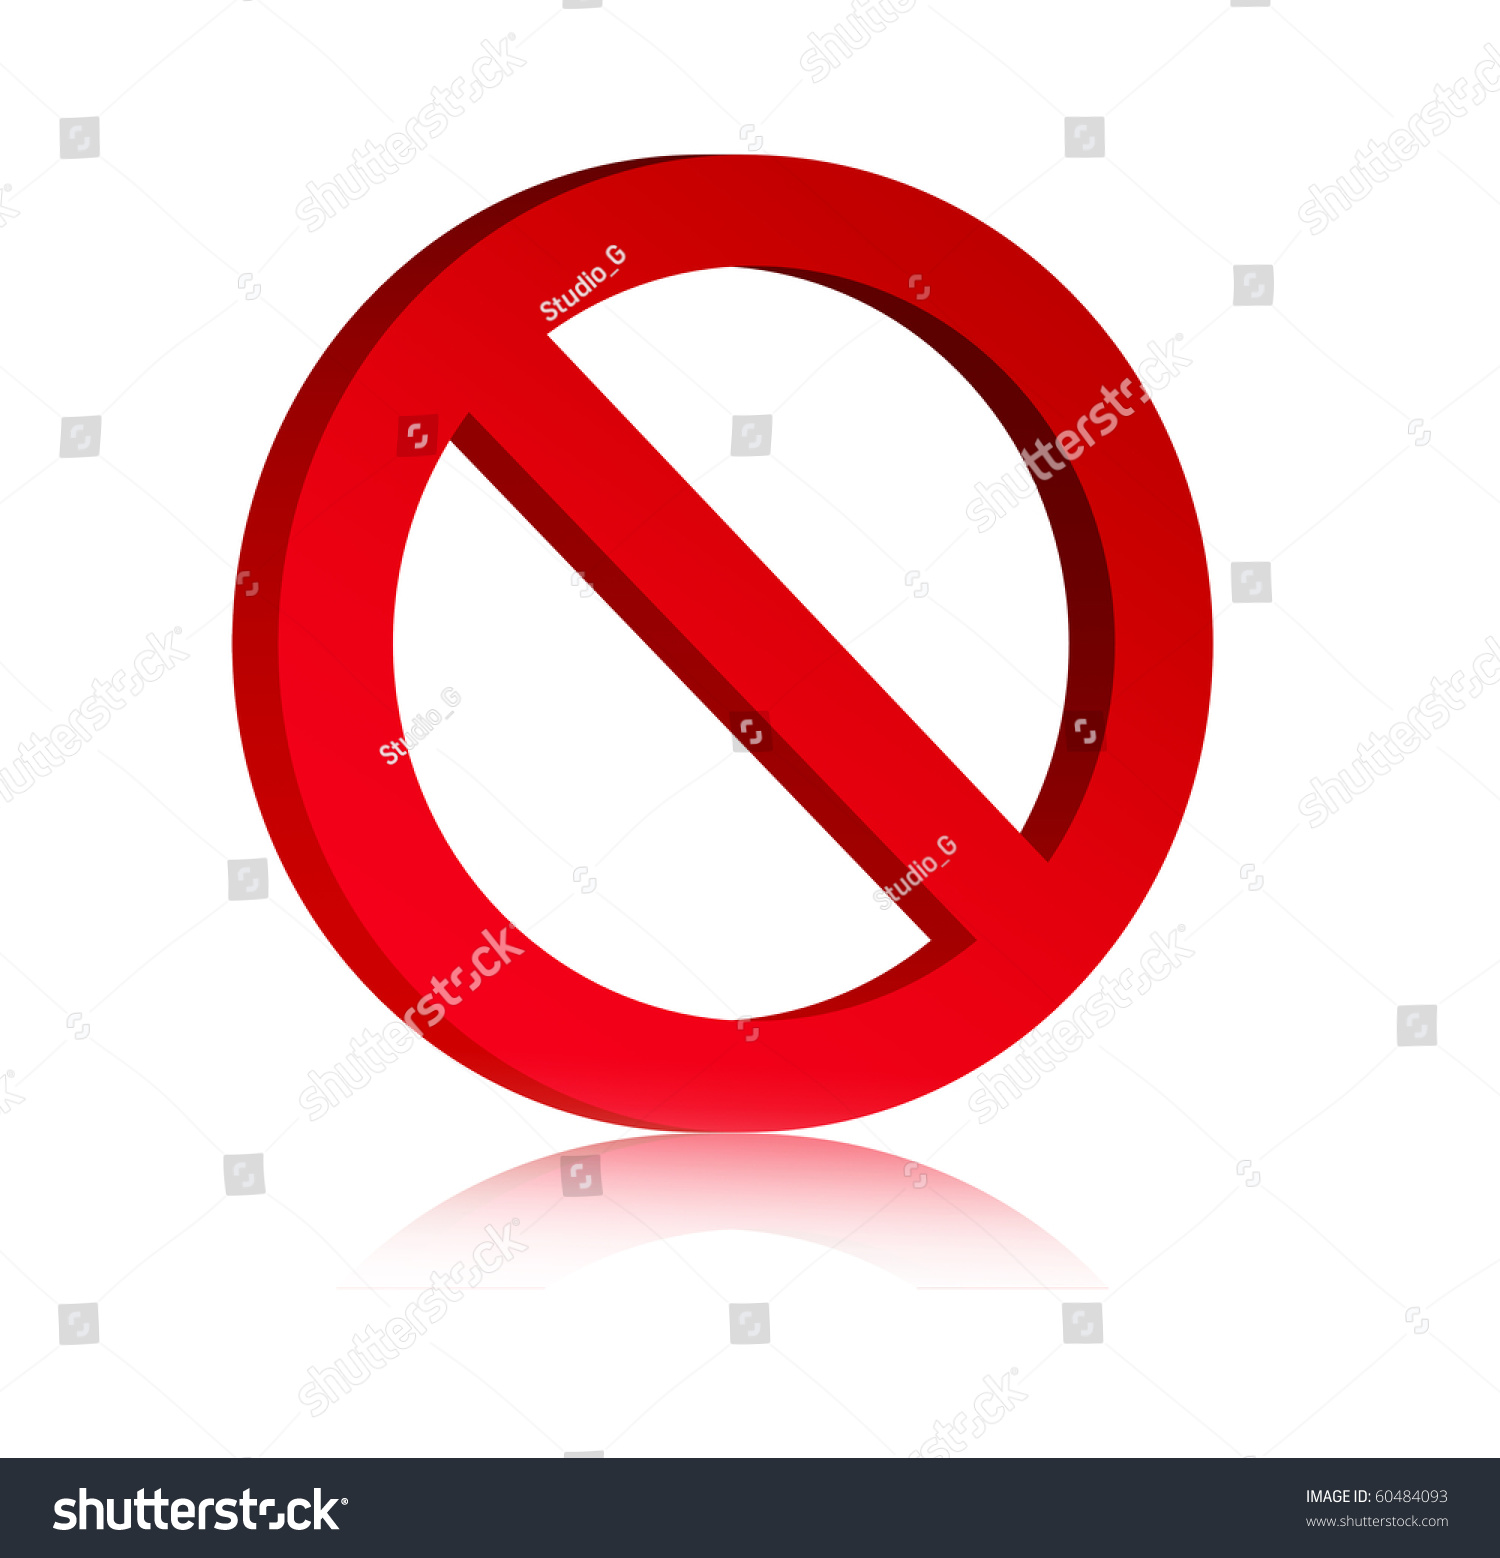 3d red prohibited symbol over white stock illustration 60484093 3d red prohibited symbol over white background empty to insert text or design buycottarizona Choice Image